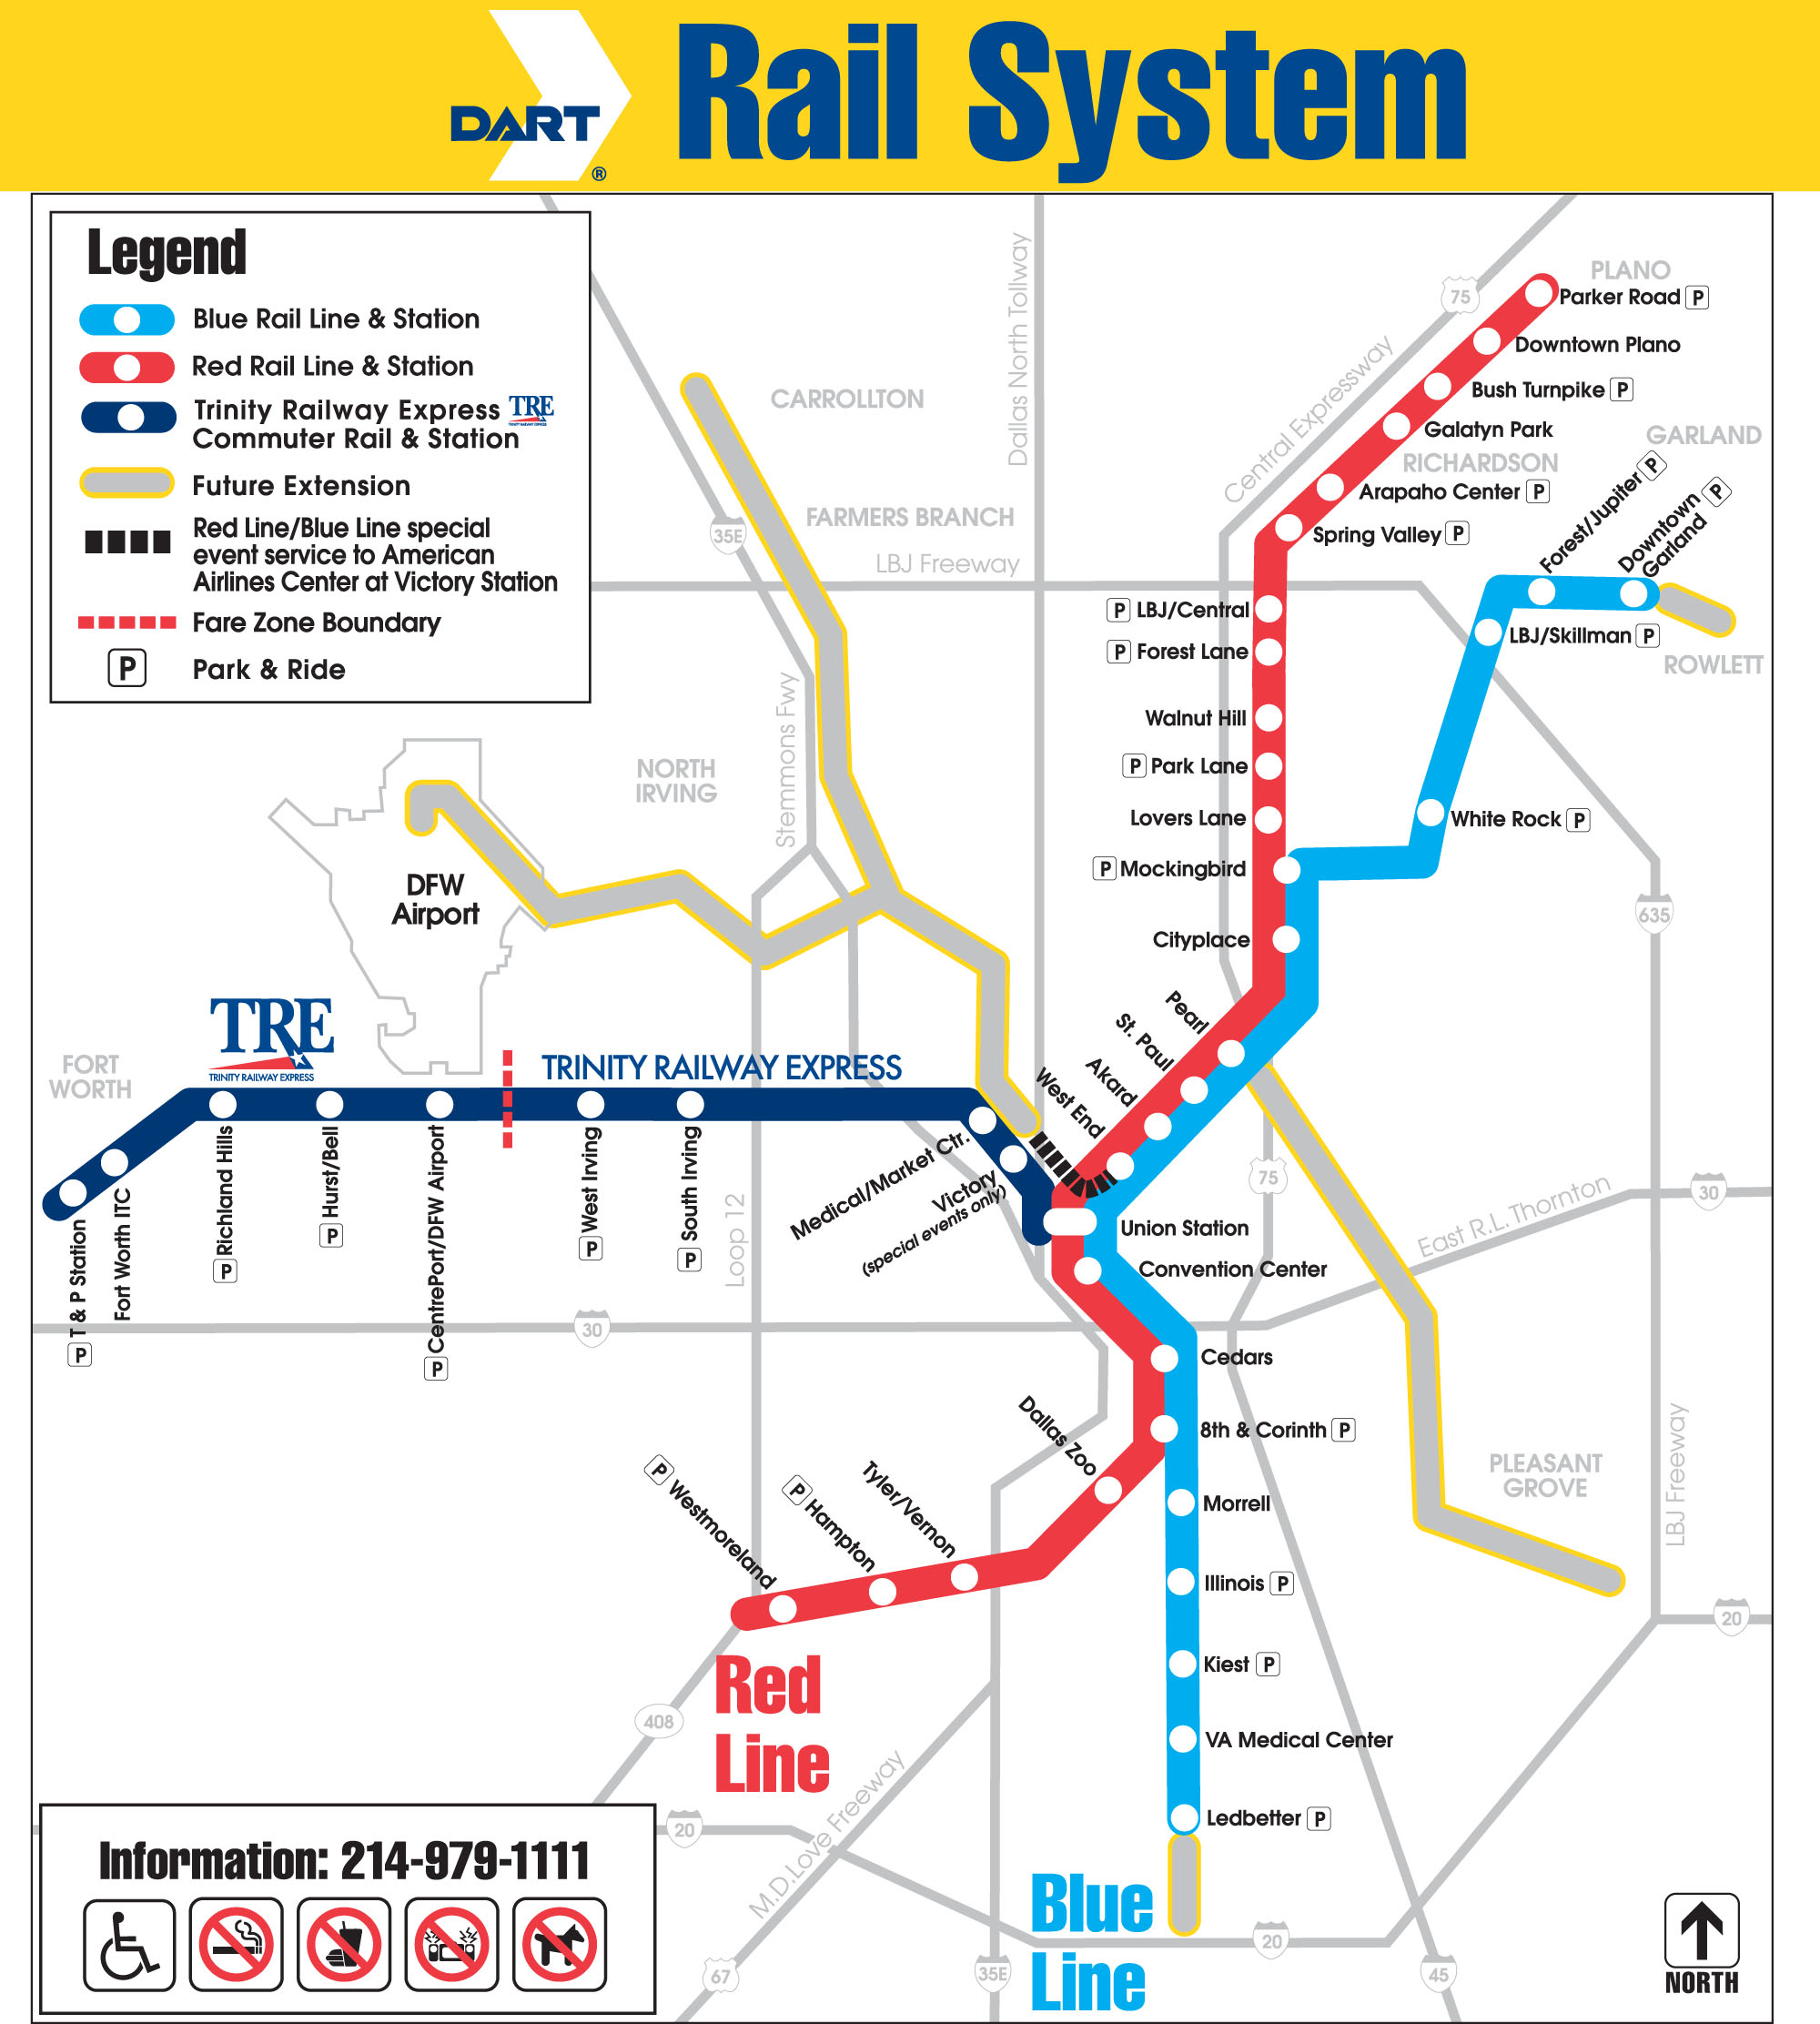 dart rail system map  dallas tx • mappery -